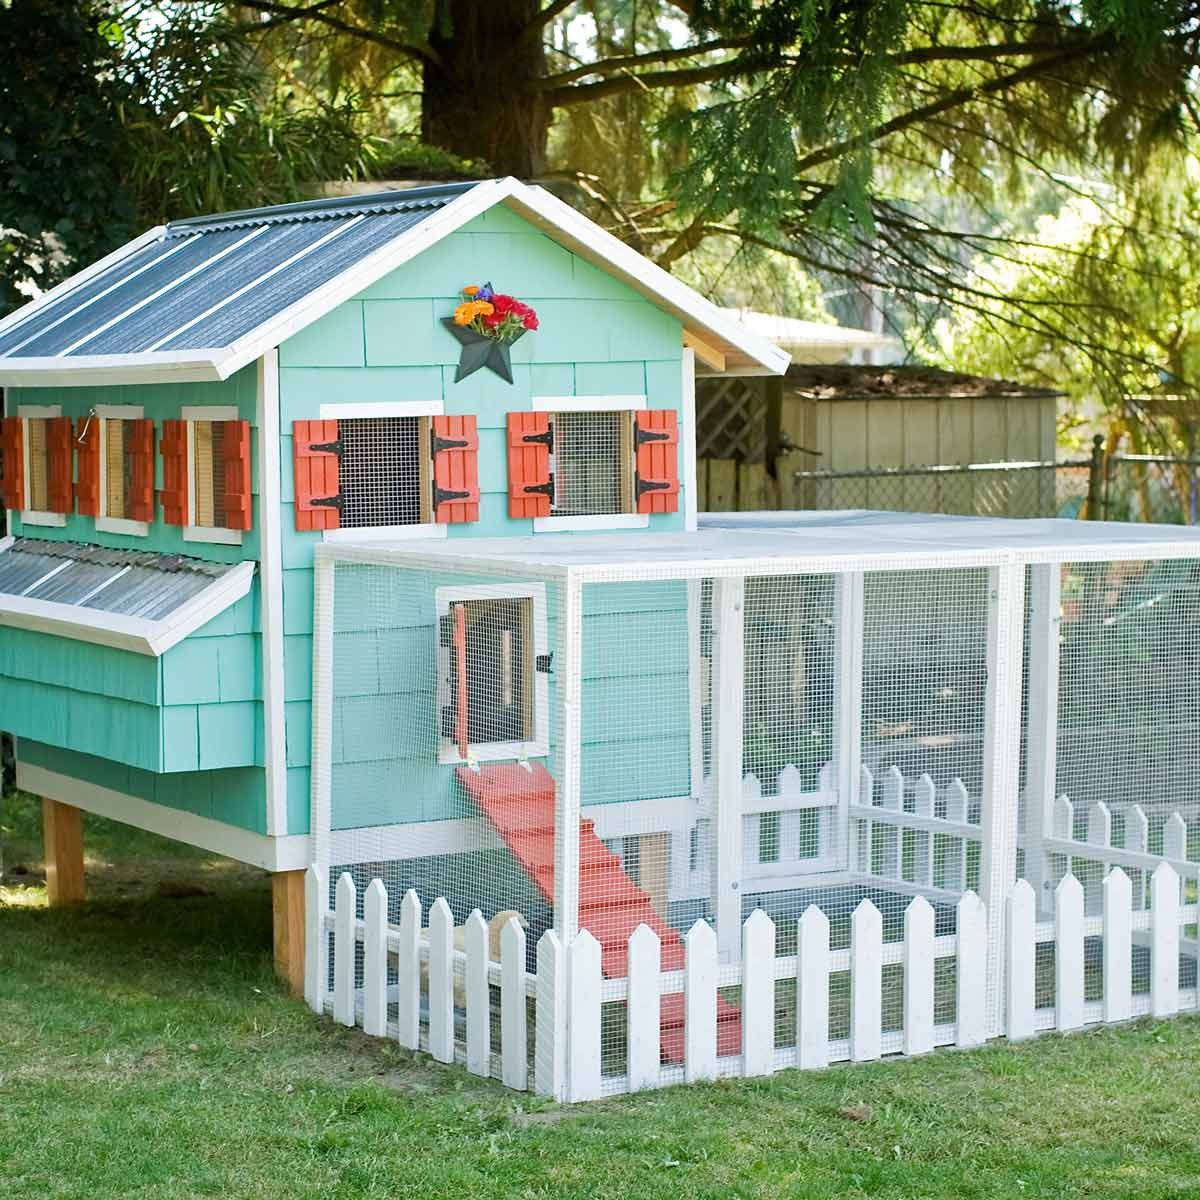 14 Backyard Chicken Coops — The Family Handyman